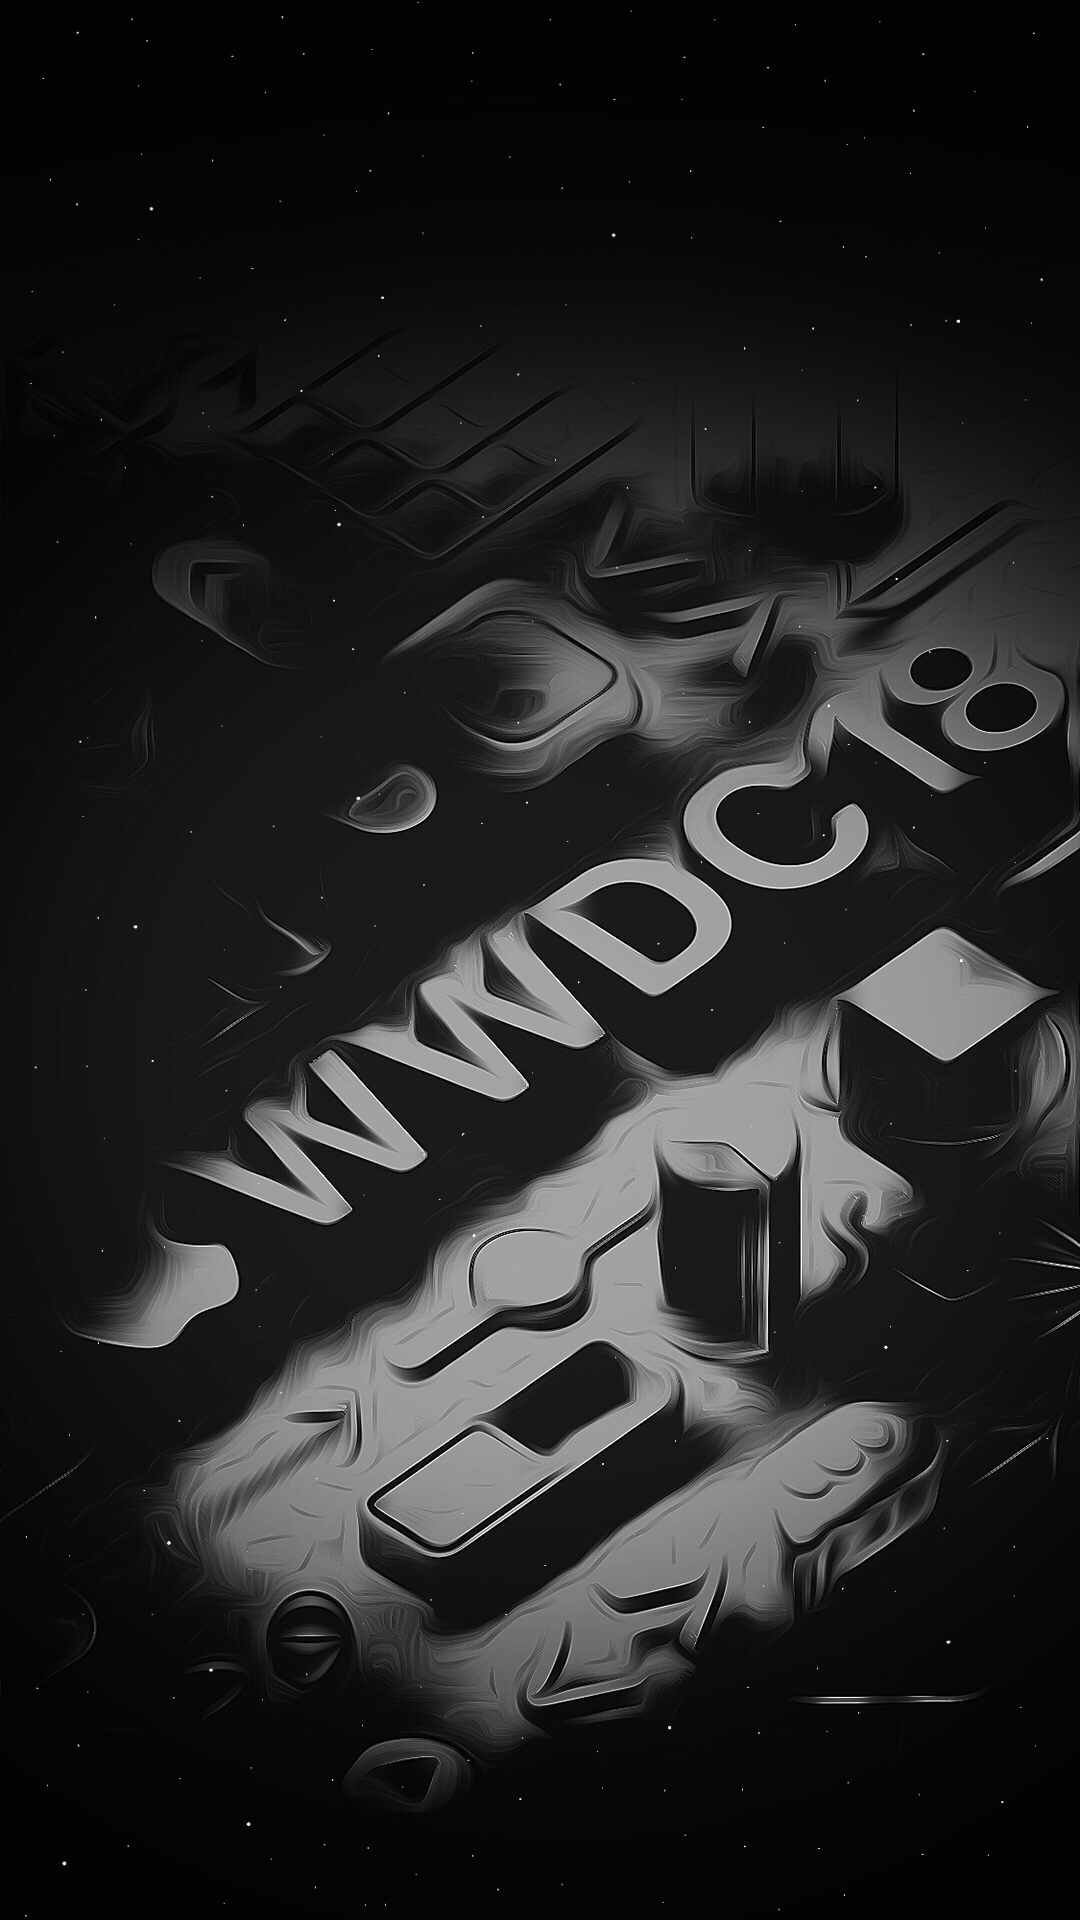 Black And White Wallpaper Designs Wwdc 2018 Iphone Wallpapers